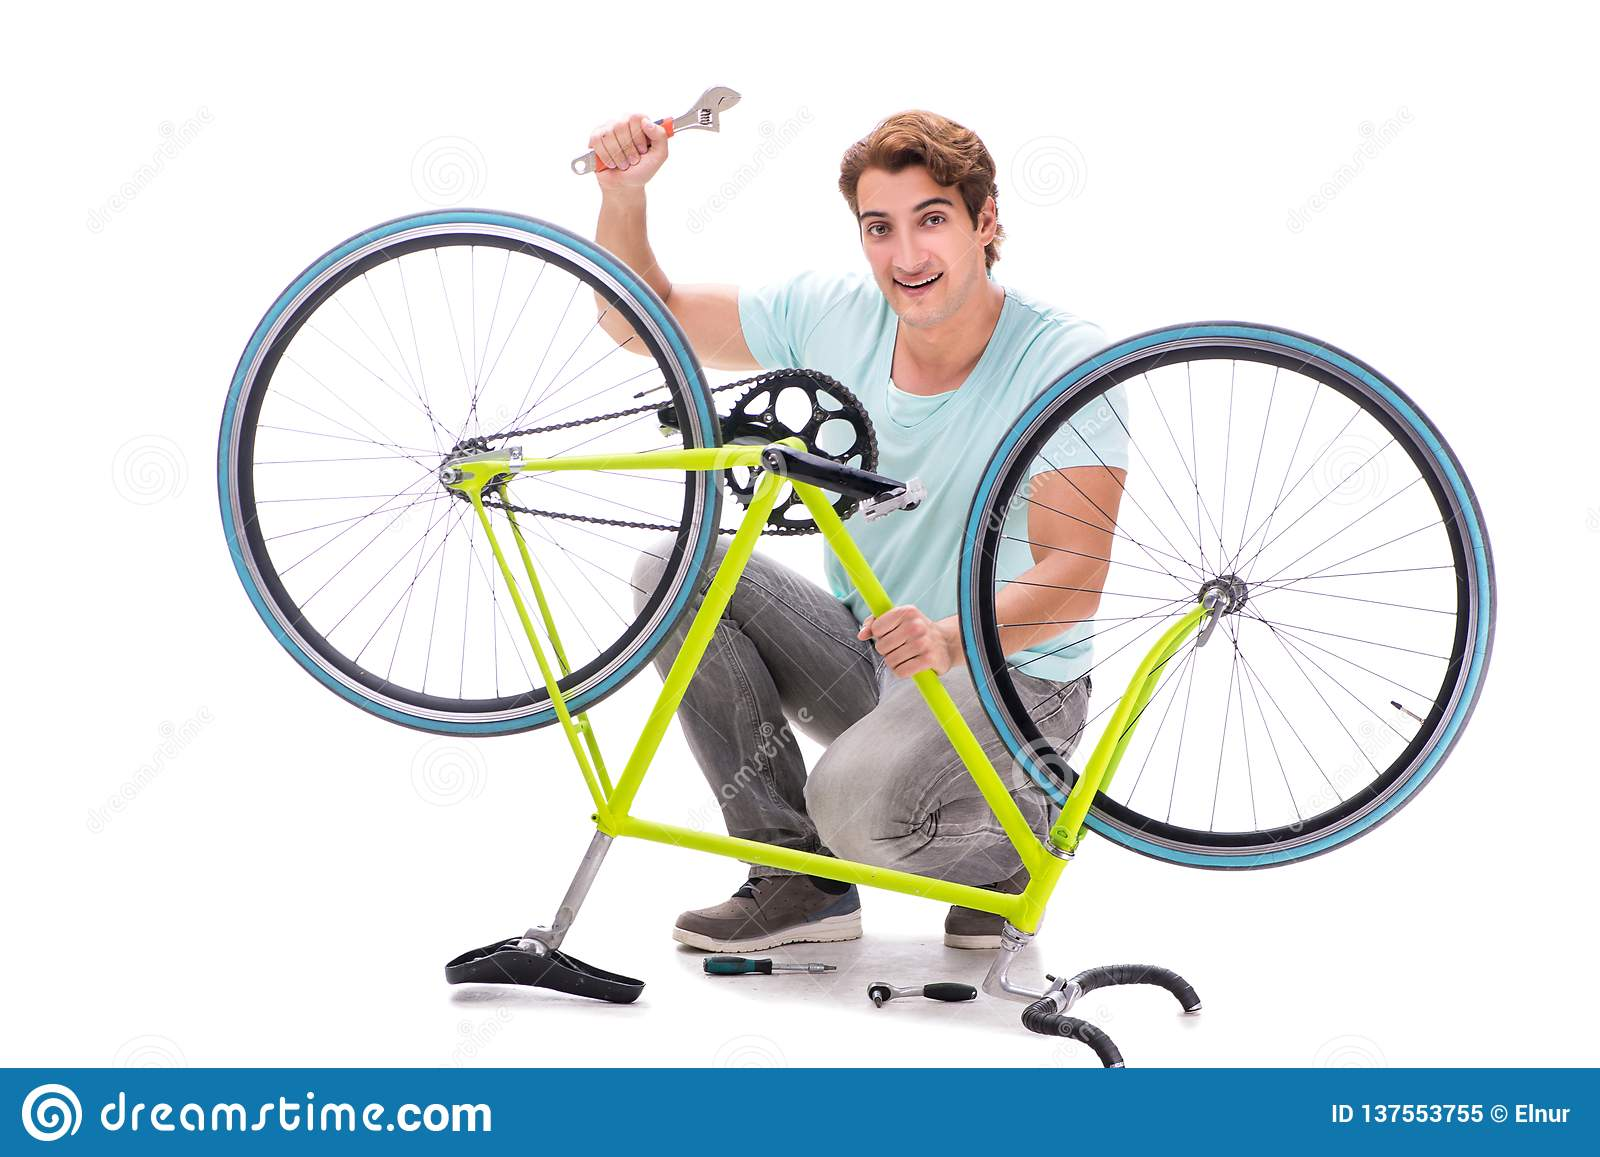 The man repairing his bike isolated on white background